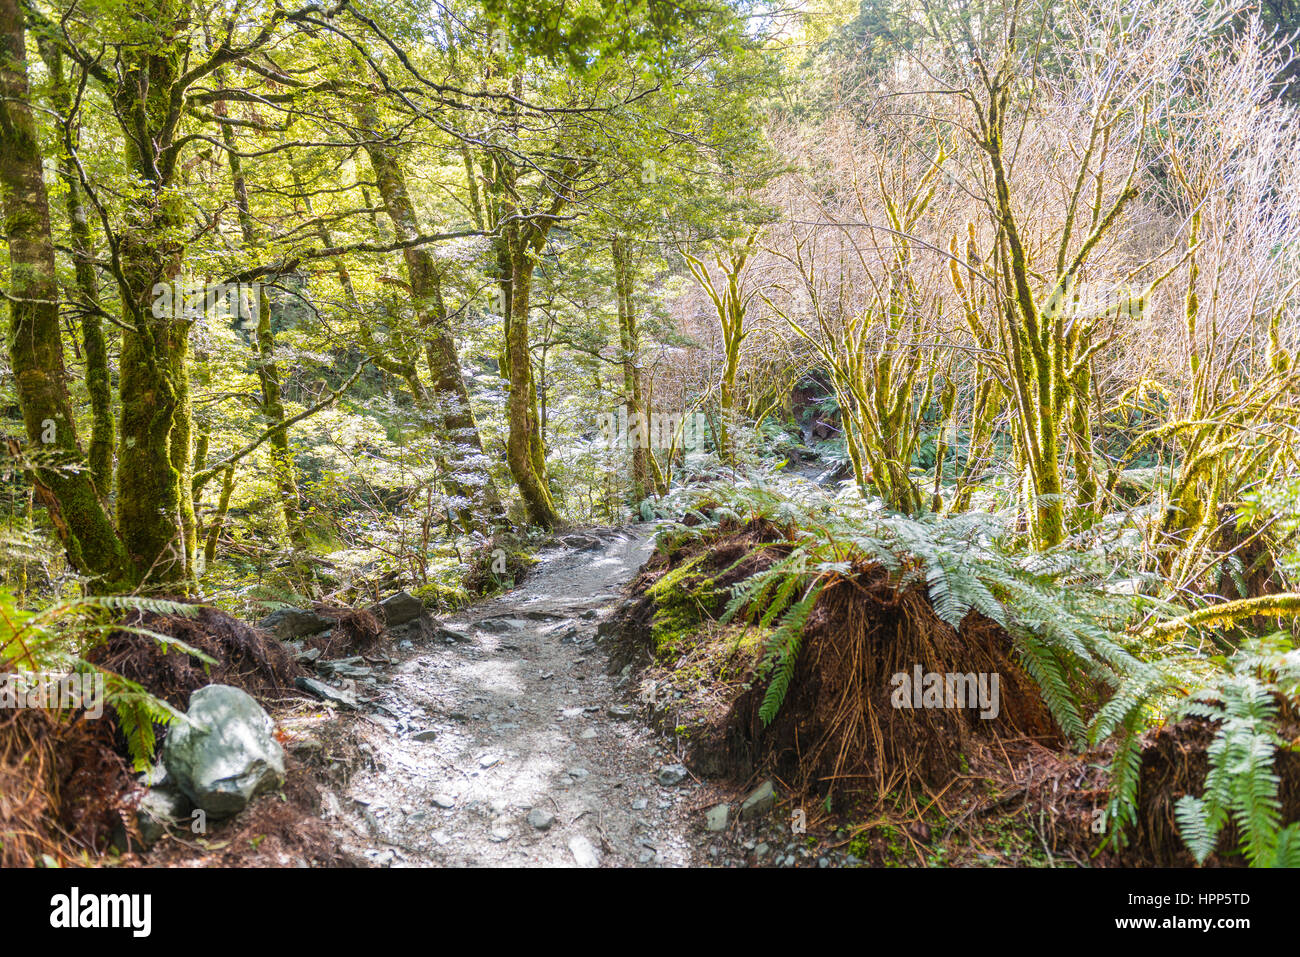 Trail through forest with fern, alpine vegetation, Mount Aspiring National Park, Otago, Southland, New Zealand Stock Photo